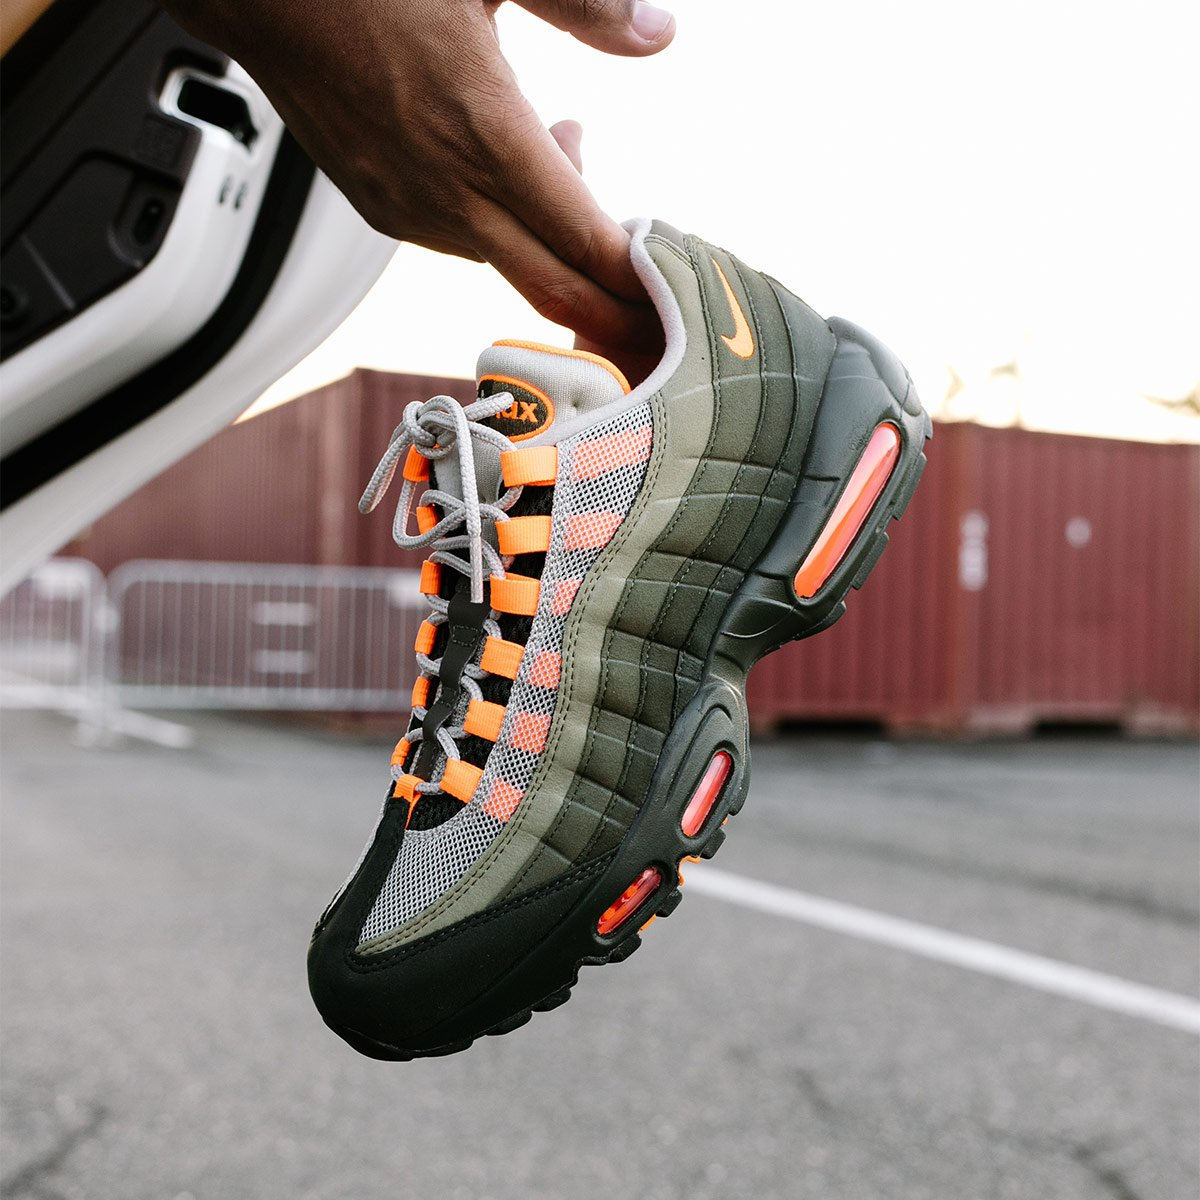 NIKE AIR MAX 95 OG 'TOTAL ORANGE' (BUY HERE)